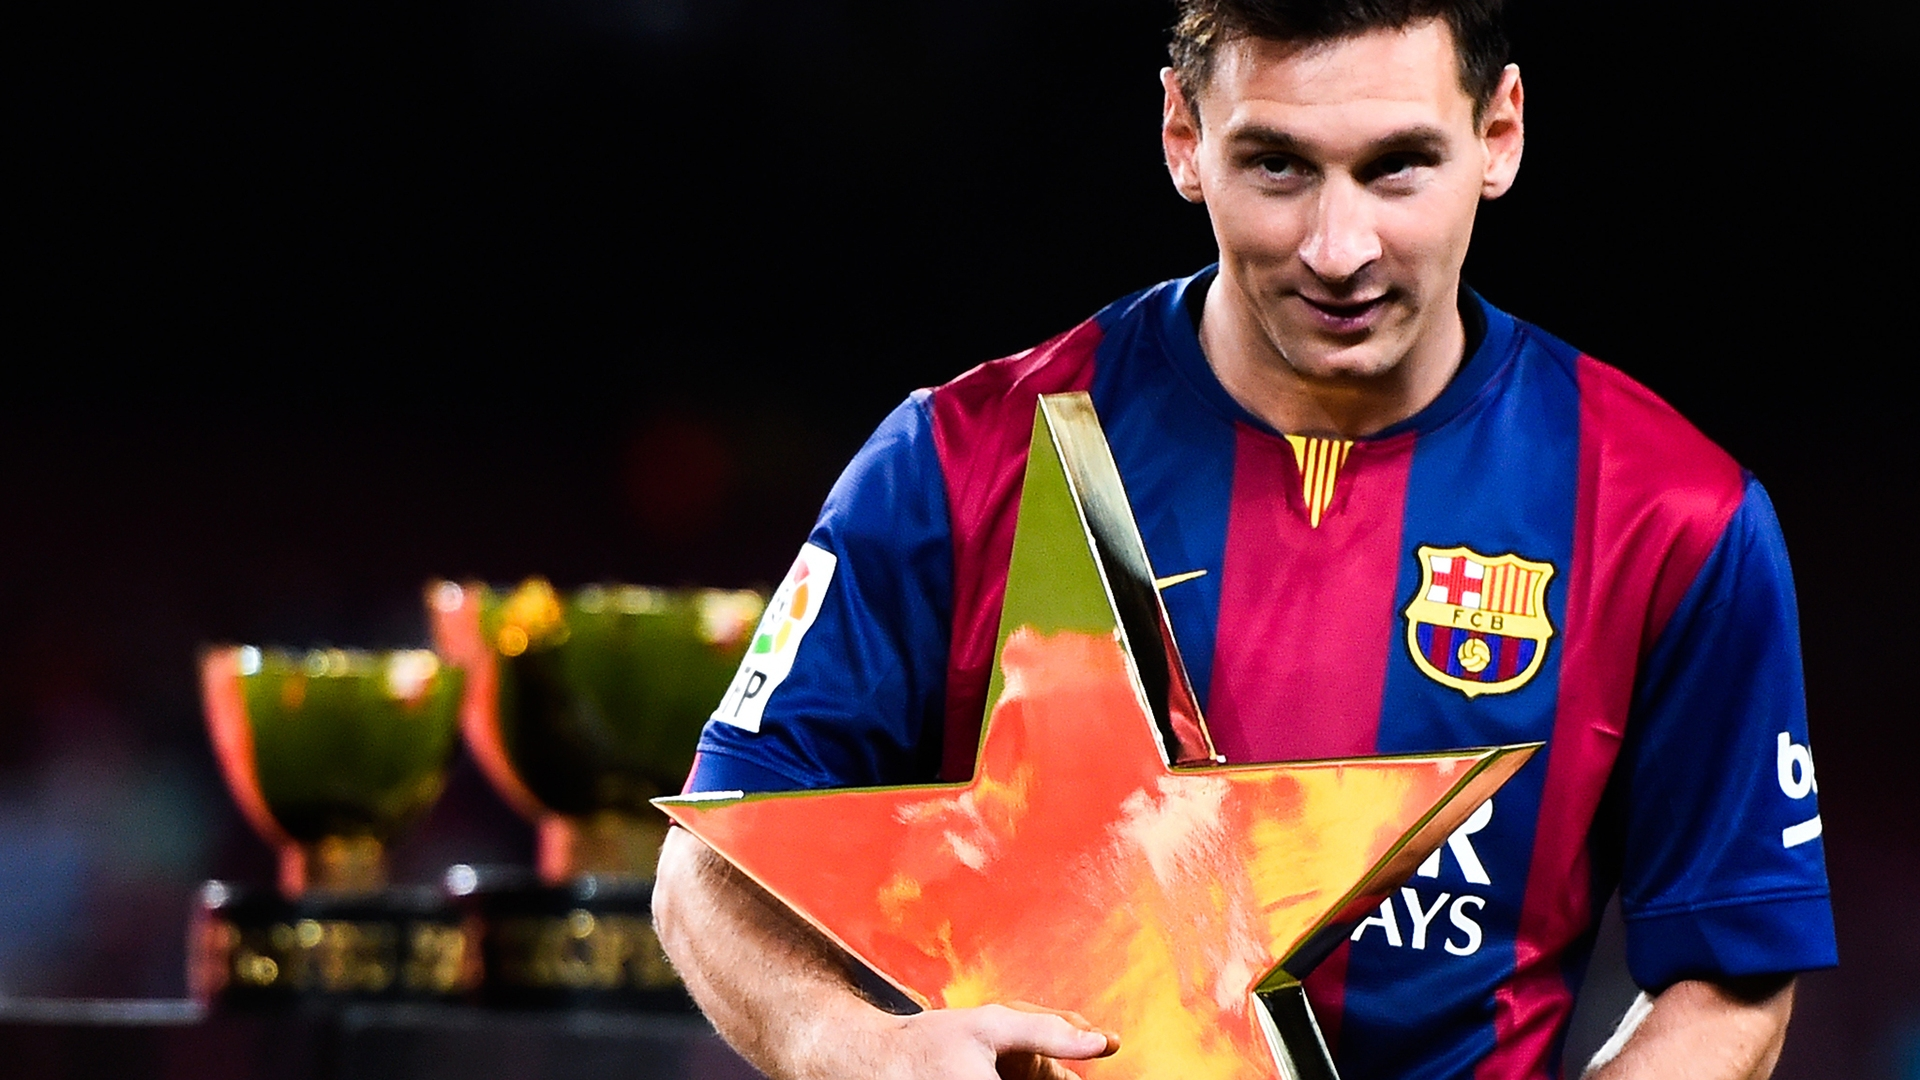 Messi Star Shaped Award for 1920 x 1080 HDTV 1080p resolution